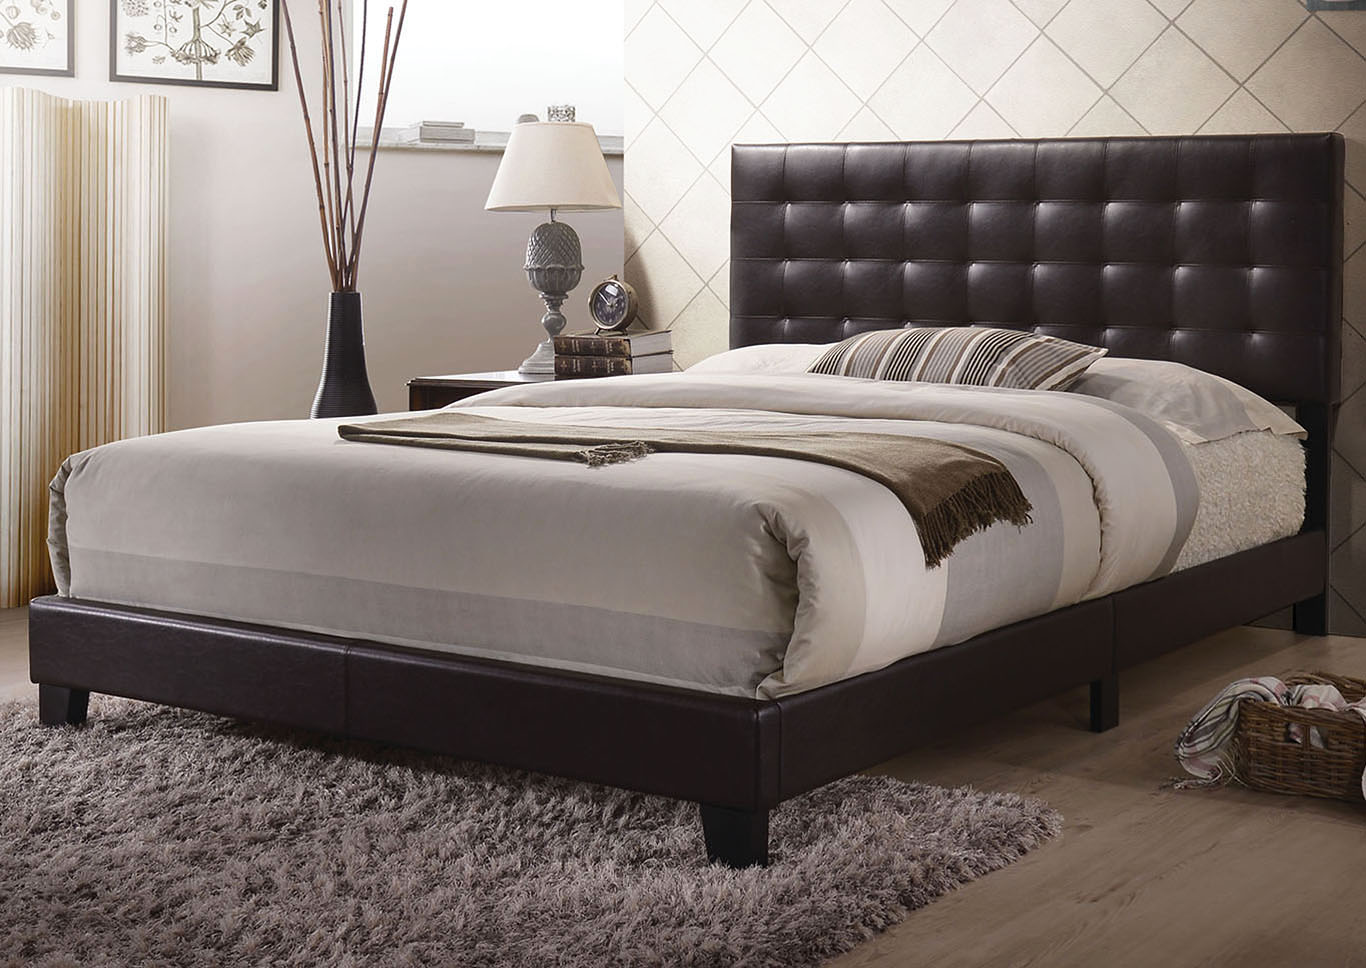 Masate Espresso Queen Bed,Acme